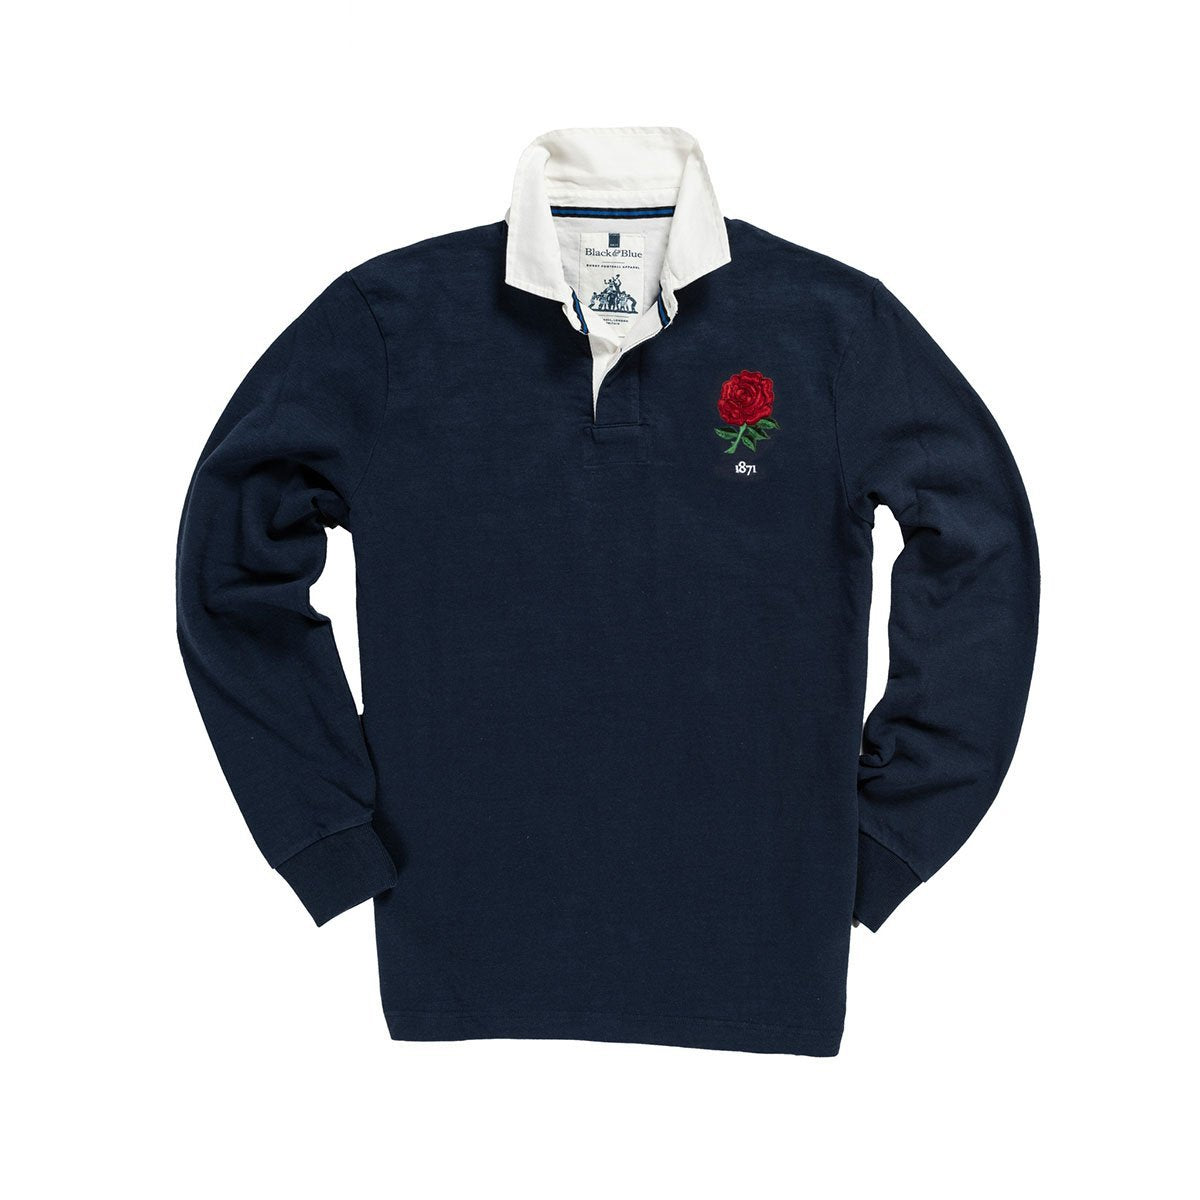 England 1871 Away Rugby Shirt